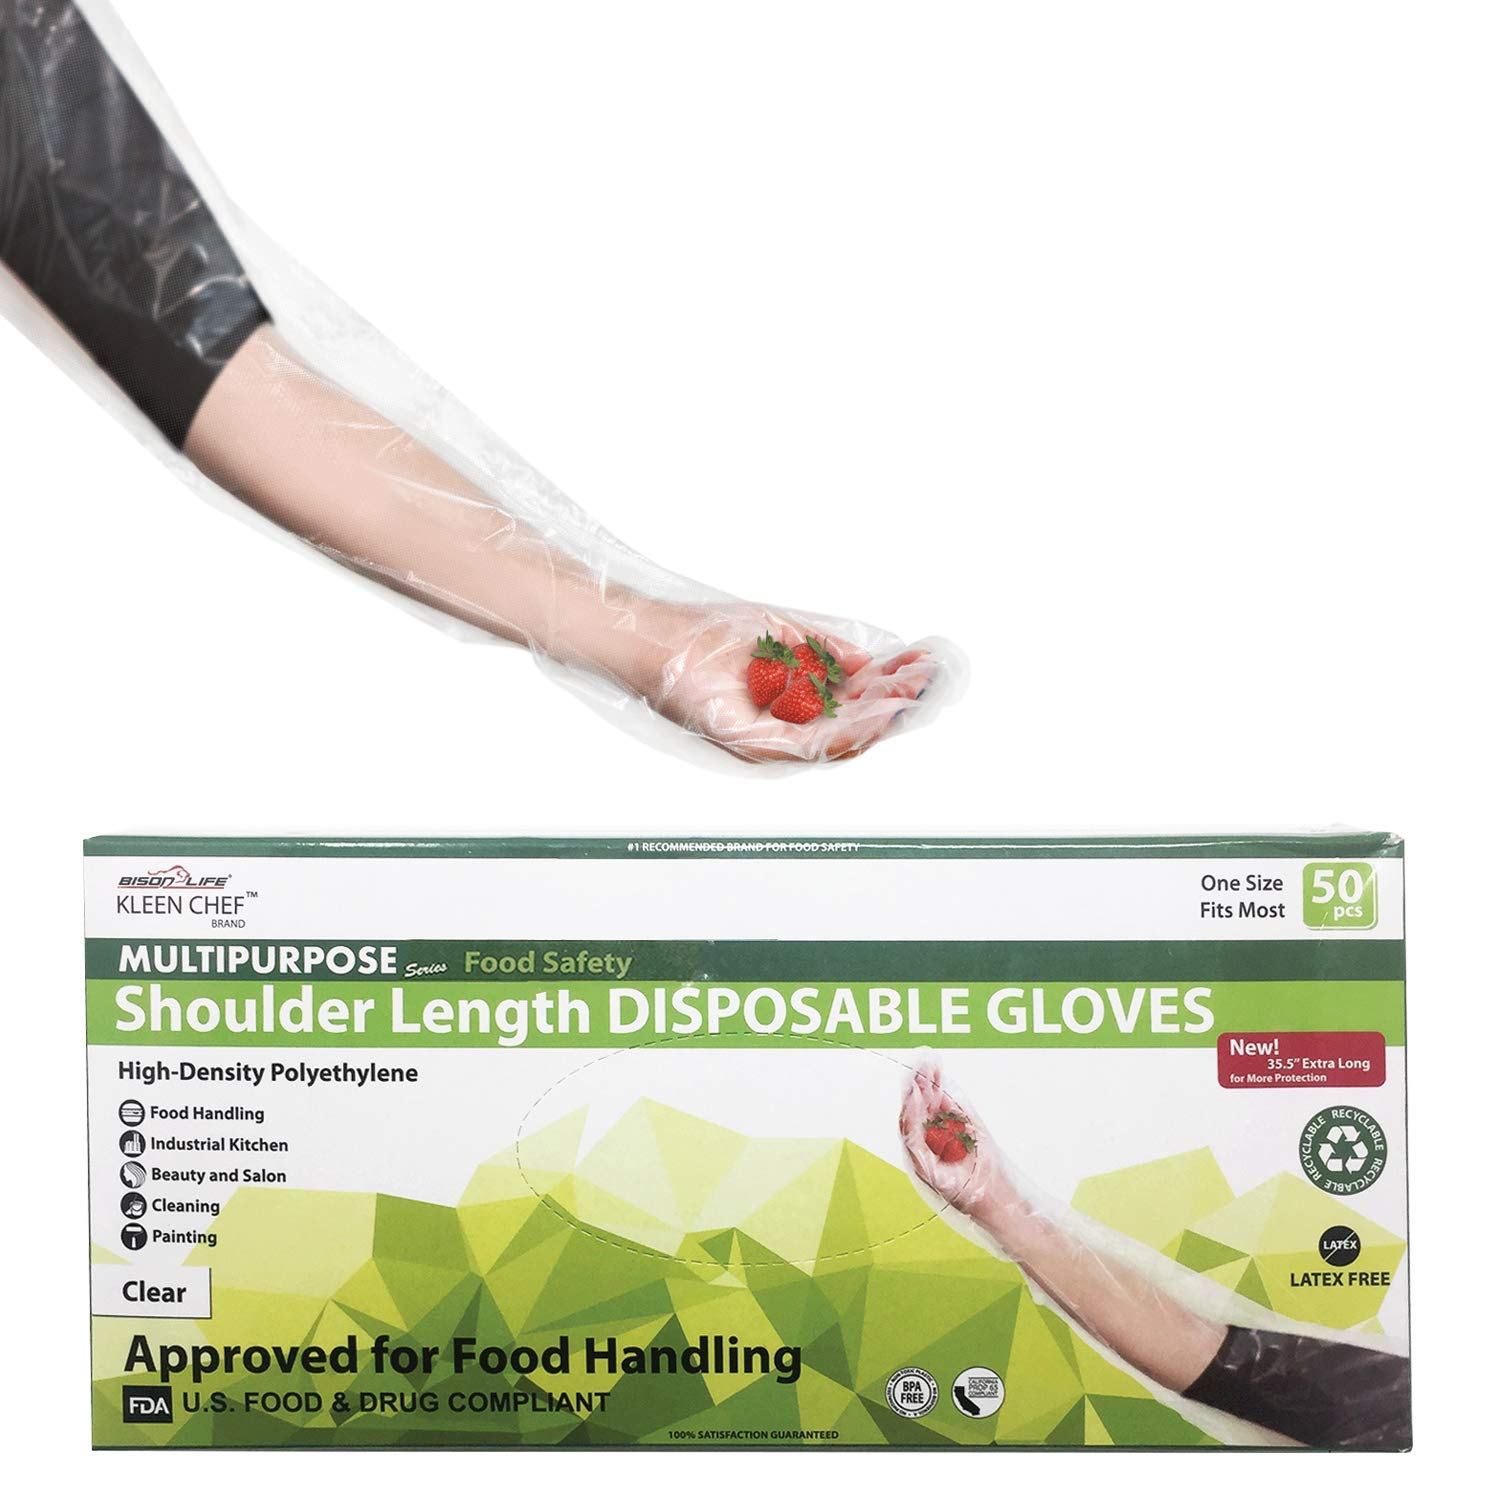 Disposable Food Handling Shoulder Length Poly Gloves - One Size Fits Most, 50 per box (1 box)